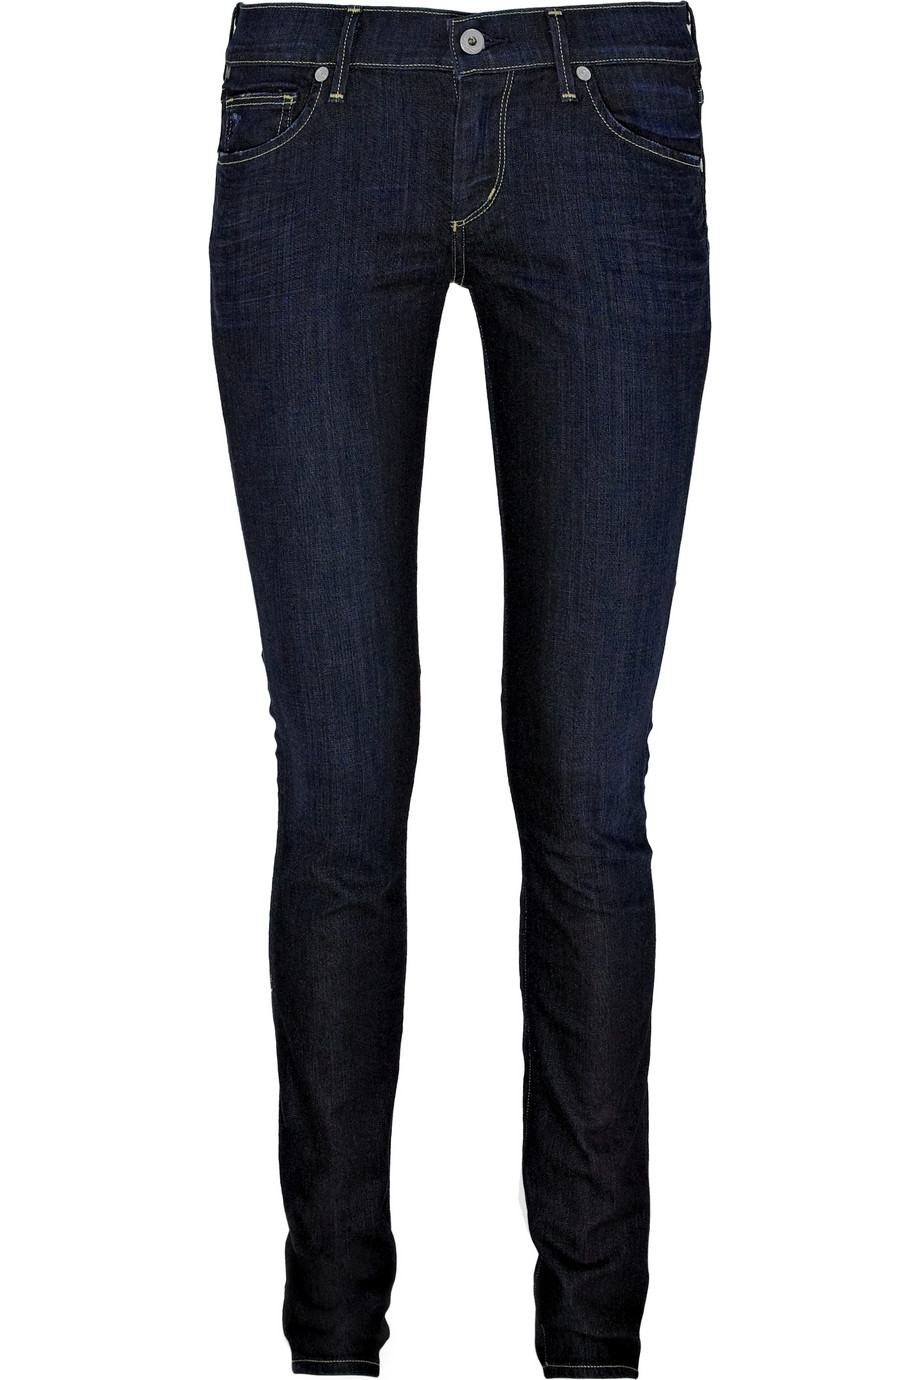 citizens of humanity ava low rise straight leg jeans in. Black Bedroom Furniture Sets. Home Design Ideas